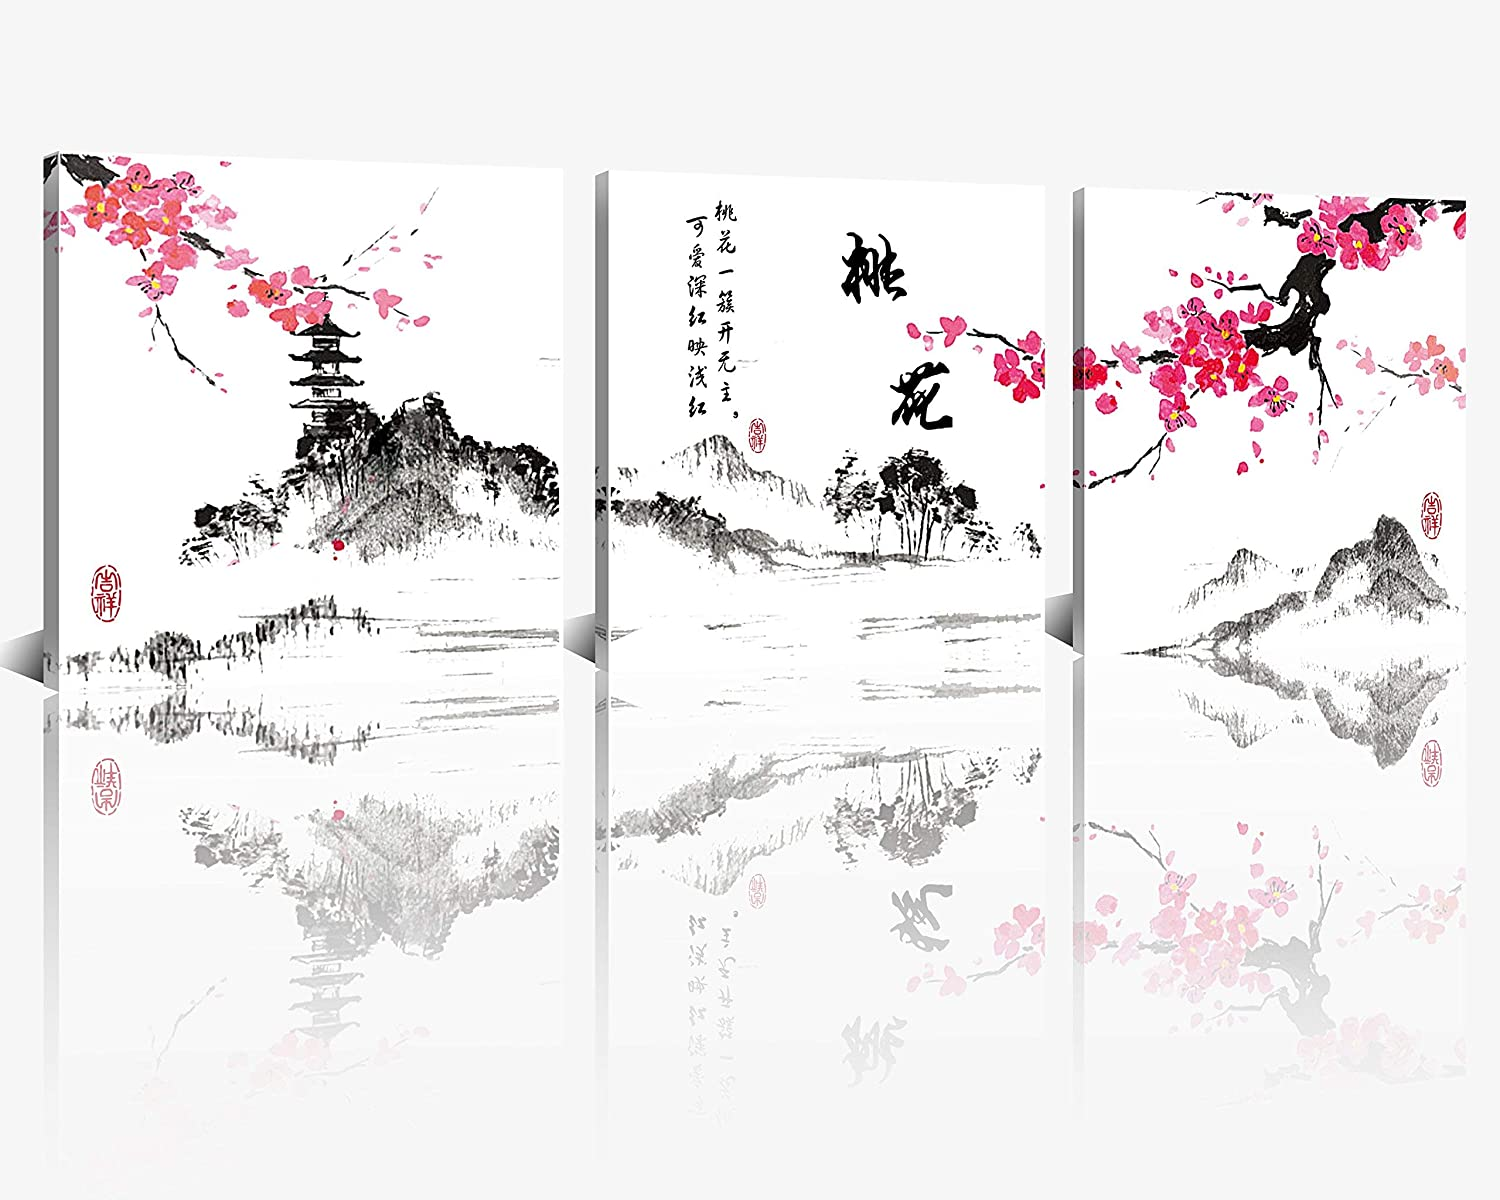 NAN Wind Small Size Traditional Chinese Painting of Peach Blossom Canvas Prints 3 Panels Calligraphy Art Paintings Wall Art Poem Print Painting Framed 12x12inches 3pcs/set